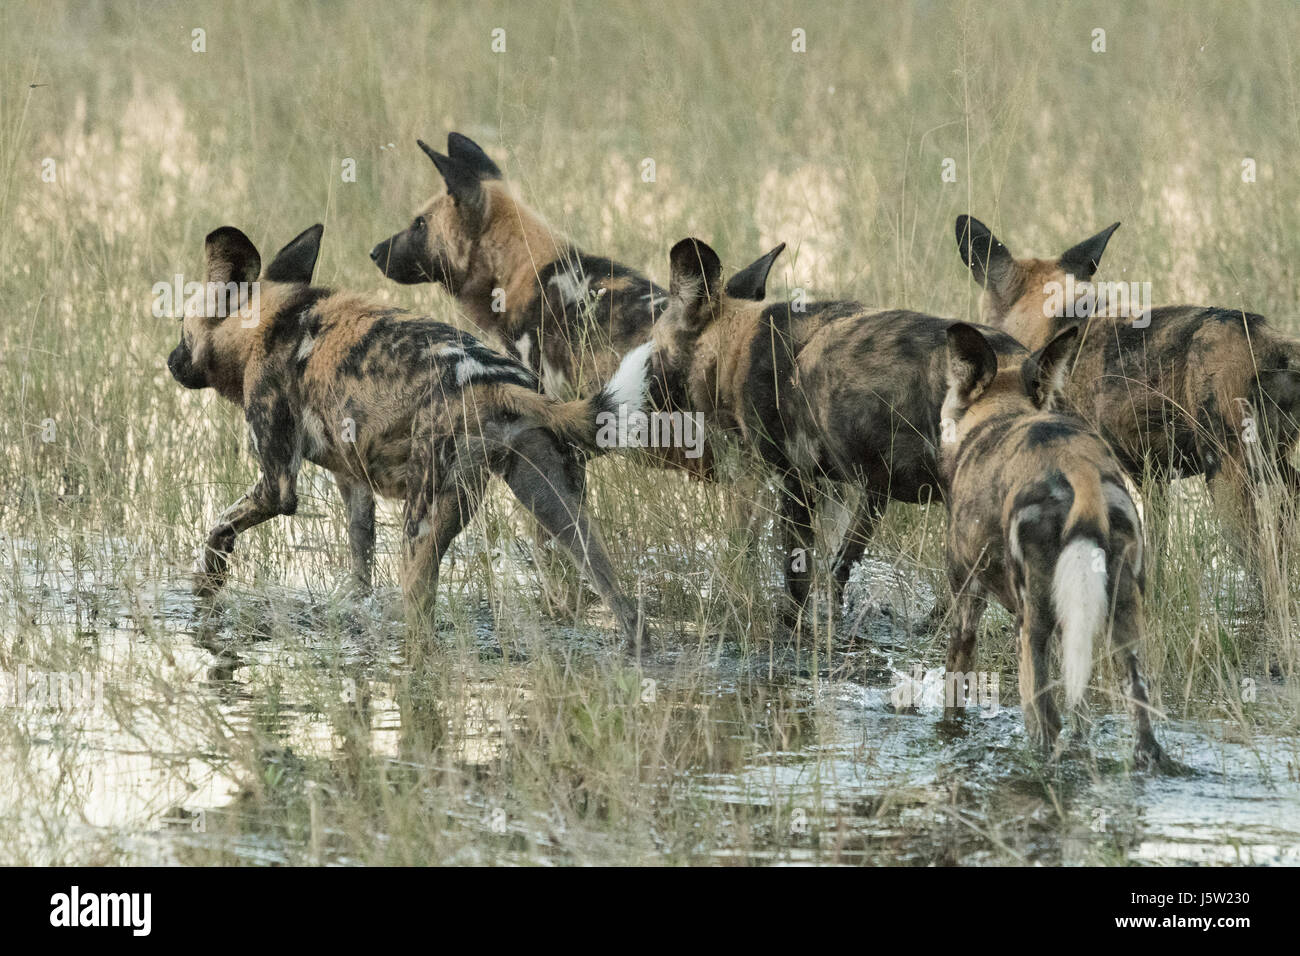 Cape hunting dogs also known as African Wild Dogs playing and hunting in the Okavango Delta Botswana - Stock Image